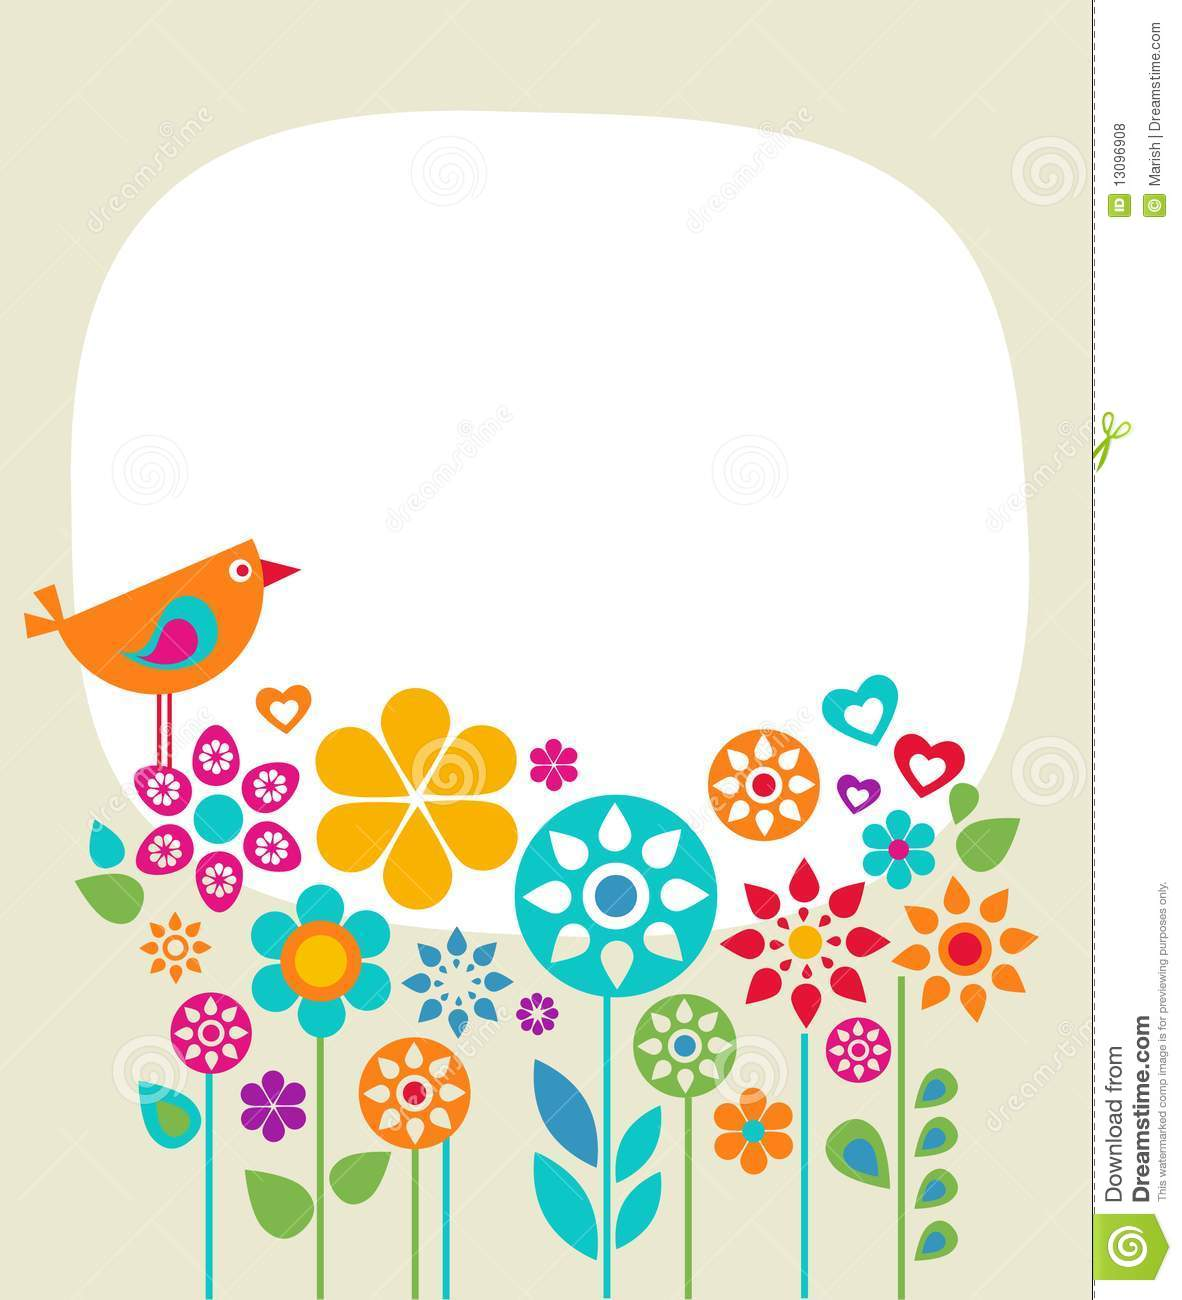 card template free - easter card template 1 stock illustration illustration